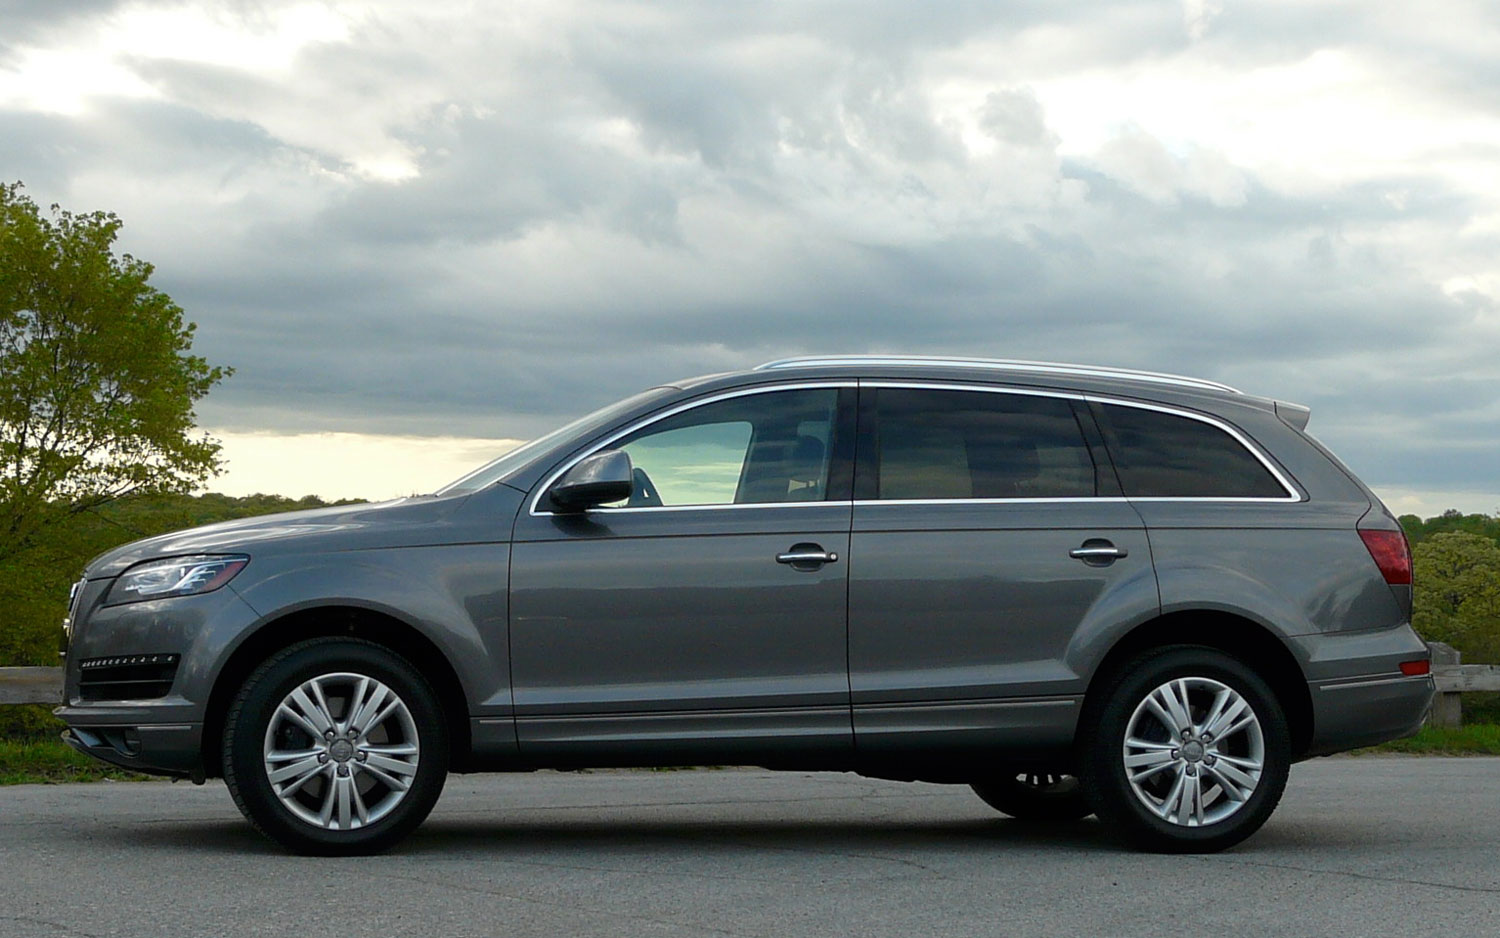 2011 Audi Q7 Tdi Left Side View3